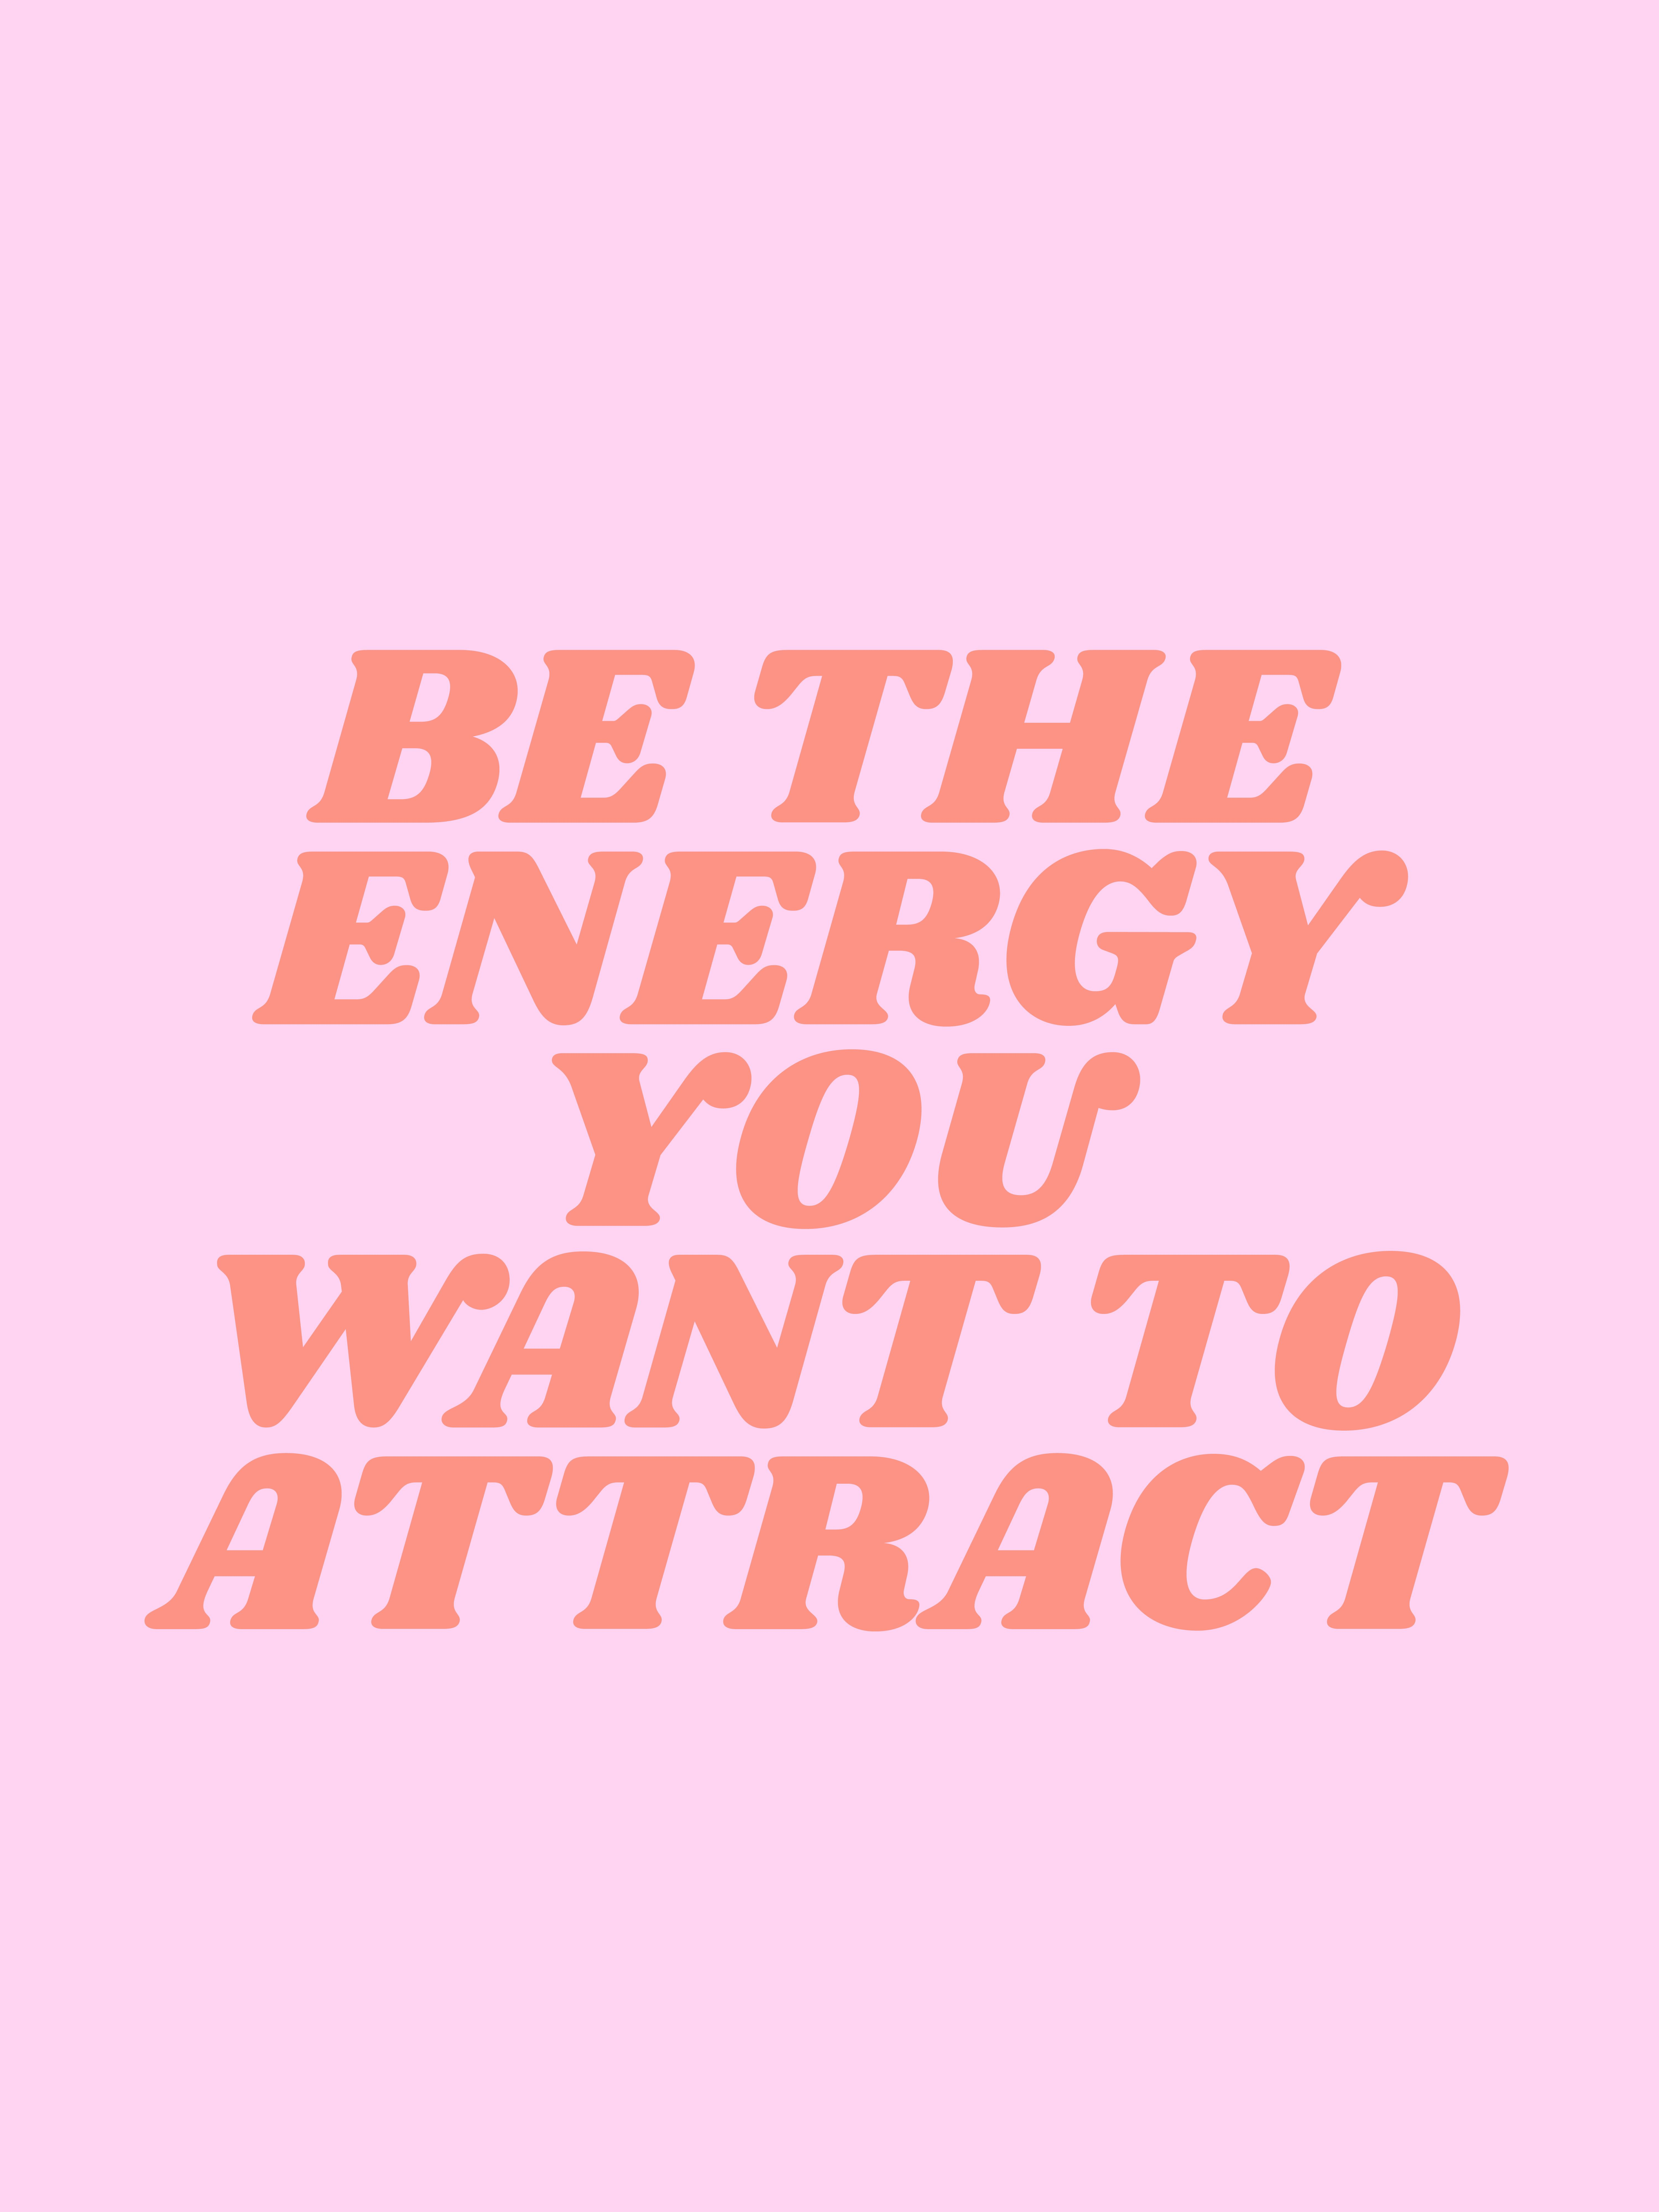 be the energy you want to attract | society6.com/typeangel